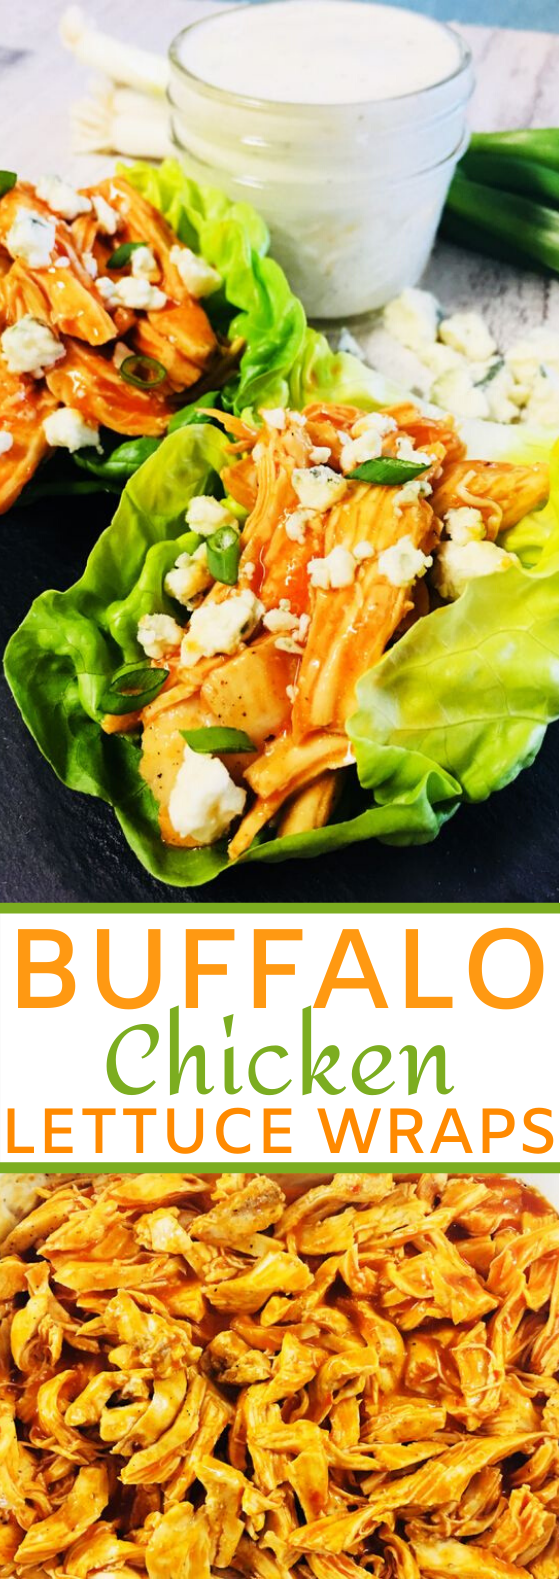 Buffalo Chicken Lettuce Wraps #healthy #lunch #lowcarb #keto #chicken